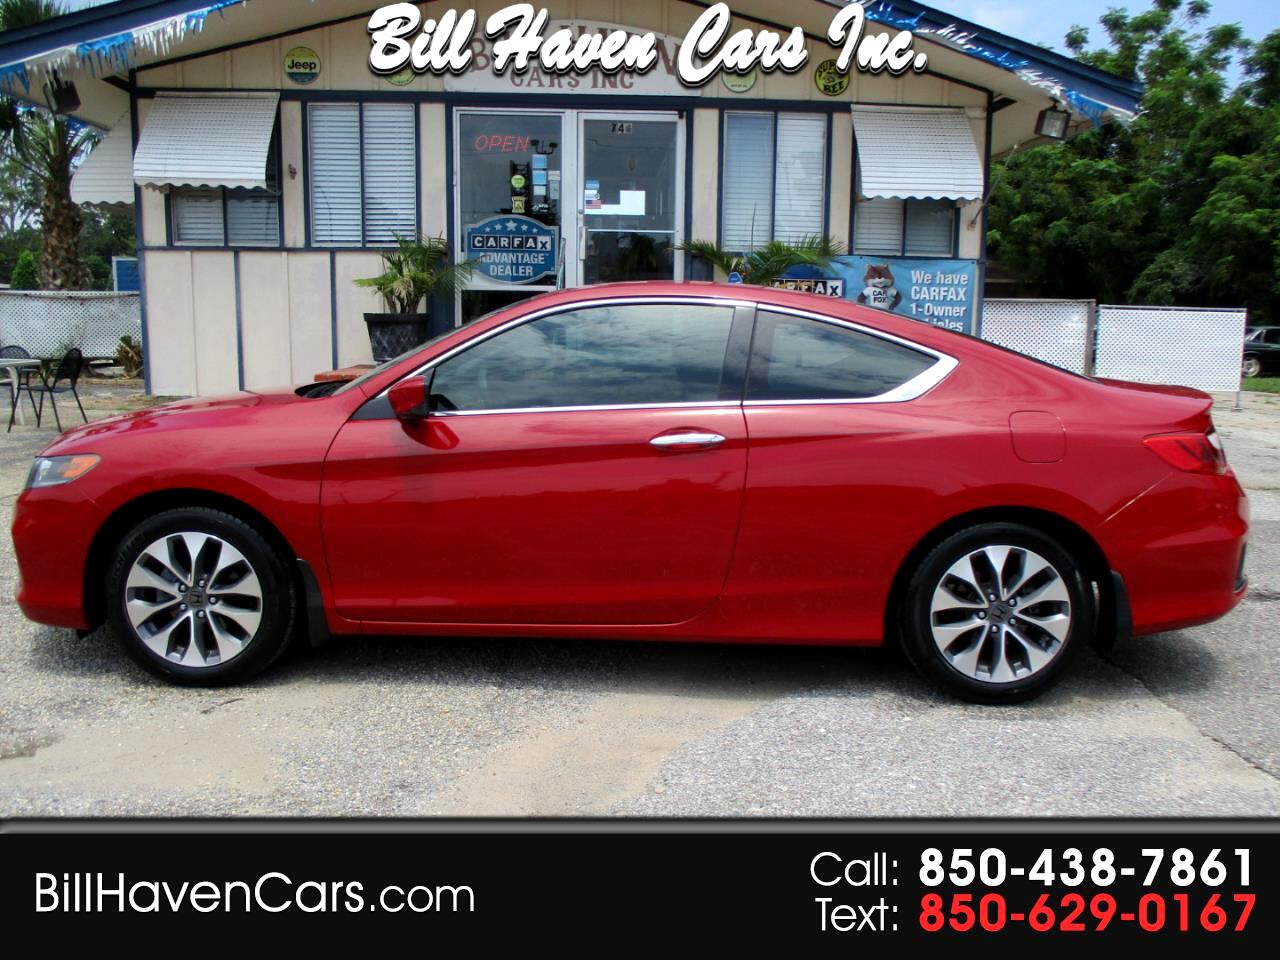 Honda Accord Coupe 2dr I4 CVT LX-S 2015